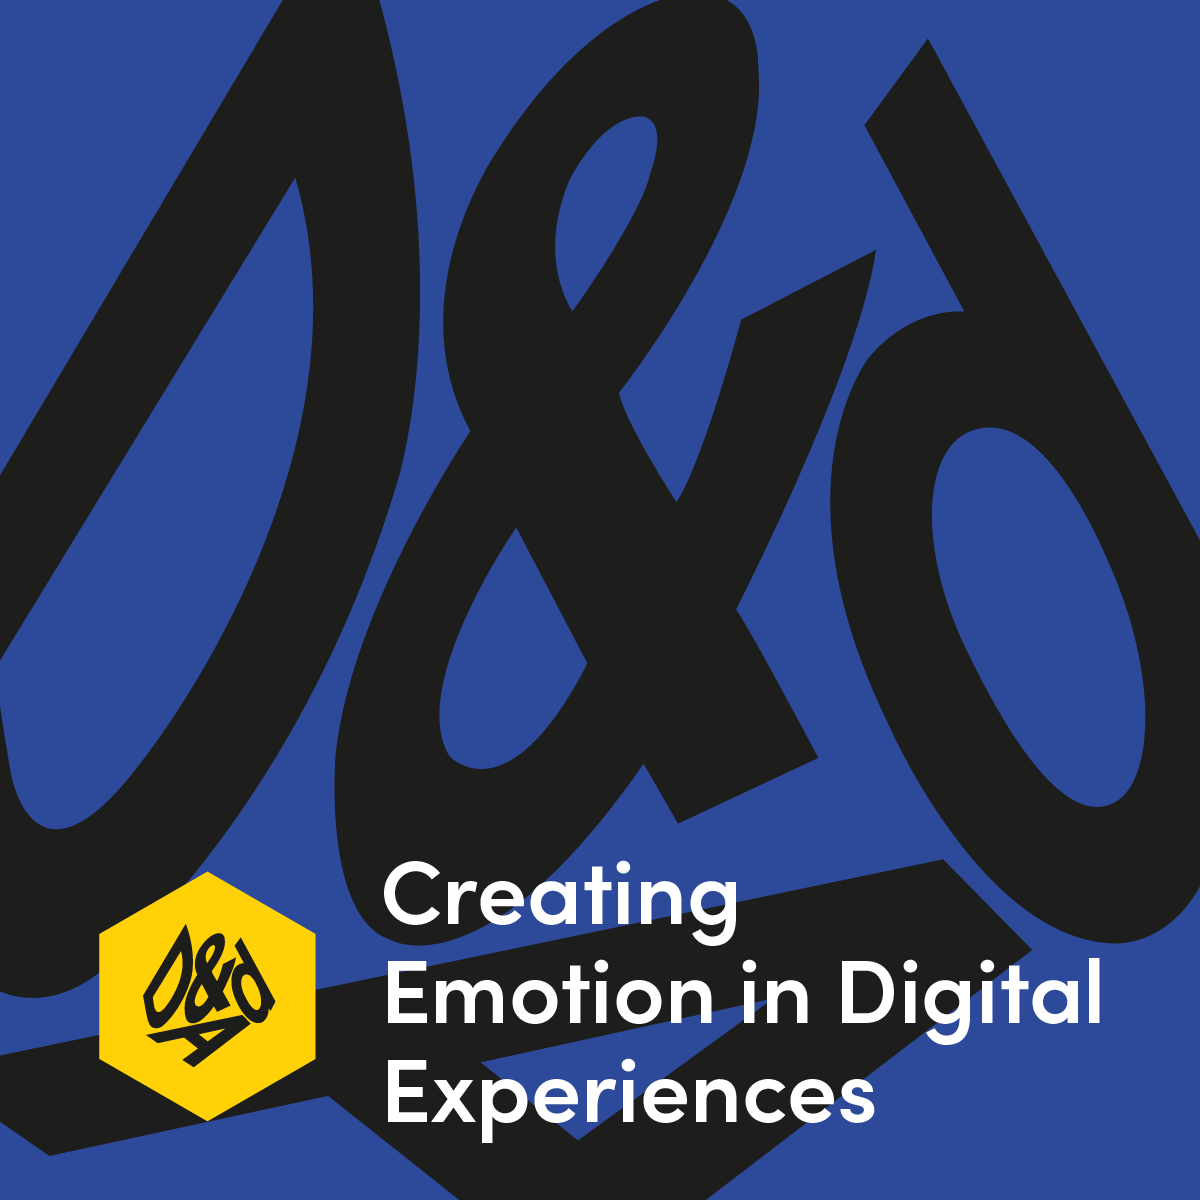 Creating Emotion in Digital Experiences - Friday 8th November D&AD, Cheshire StreetLondon, UK